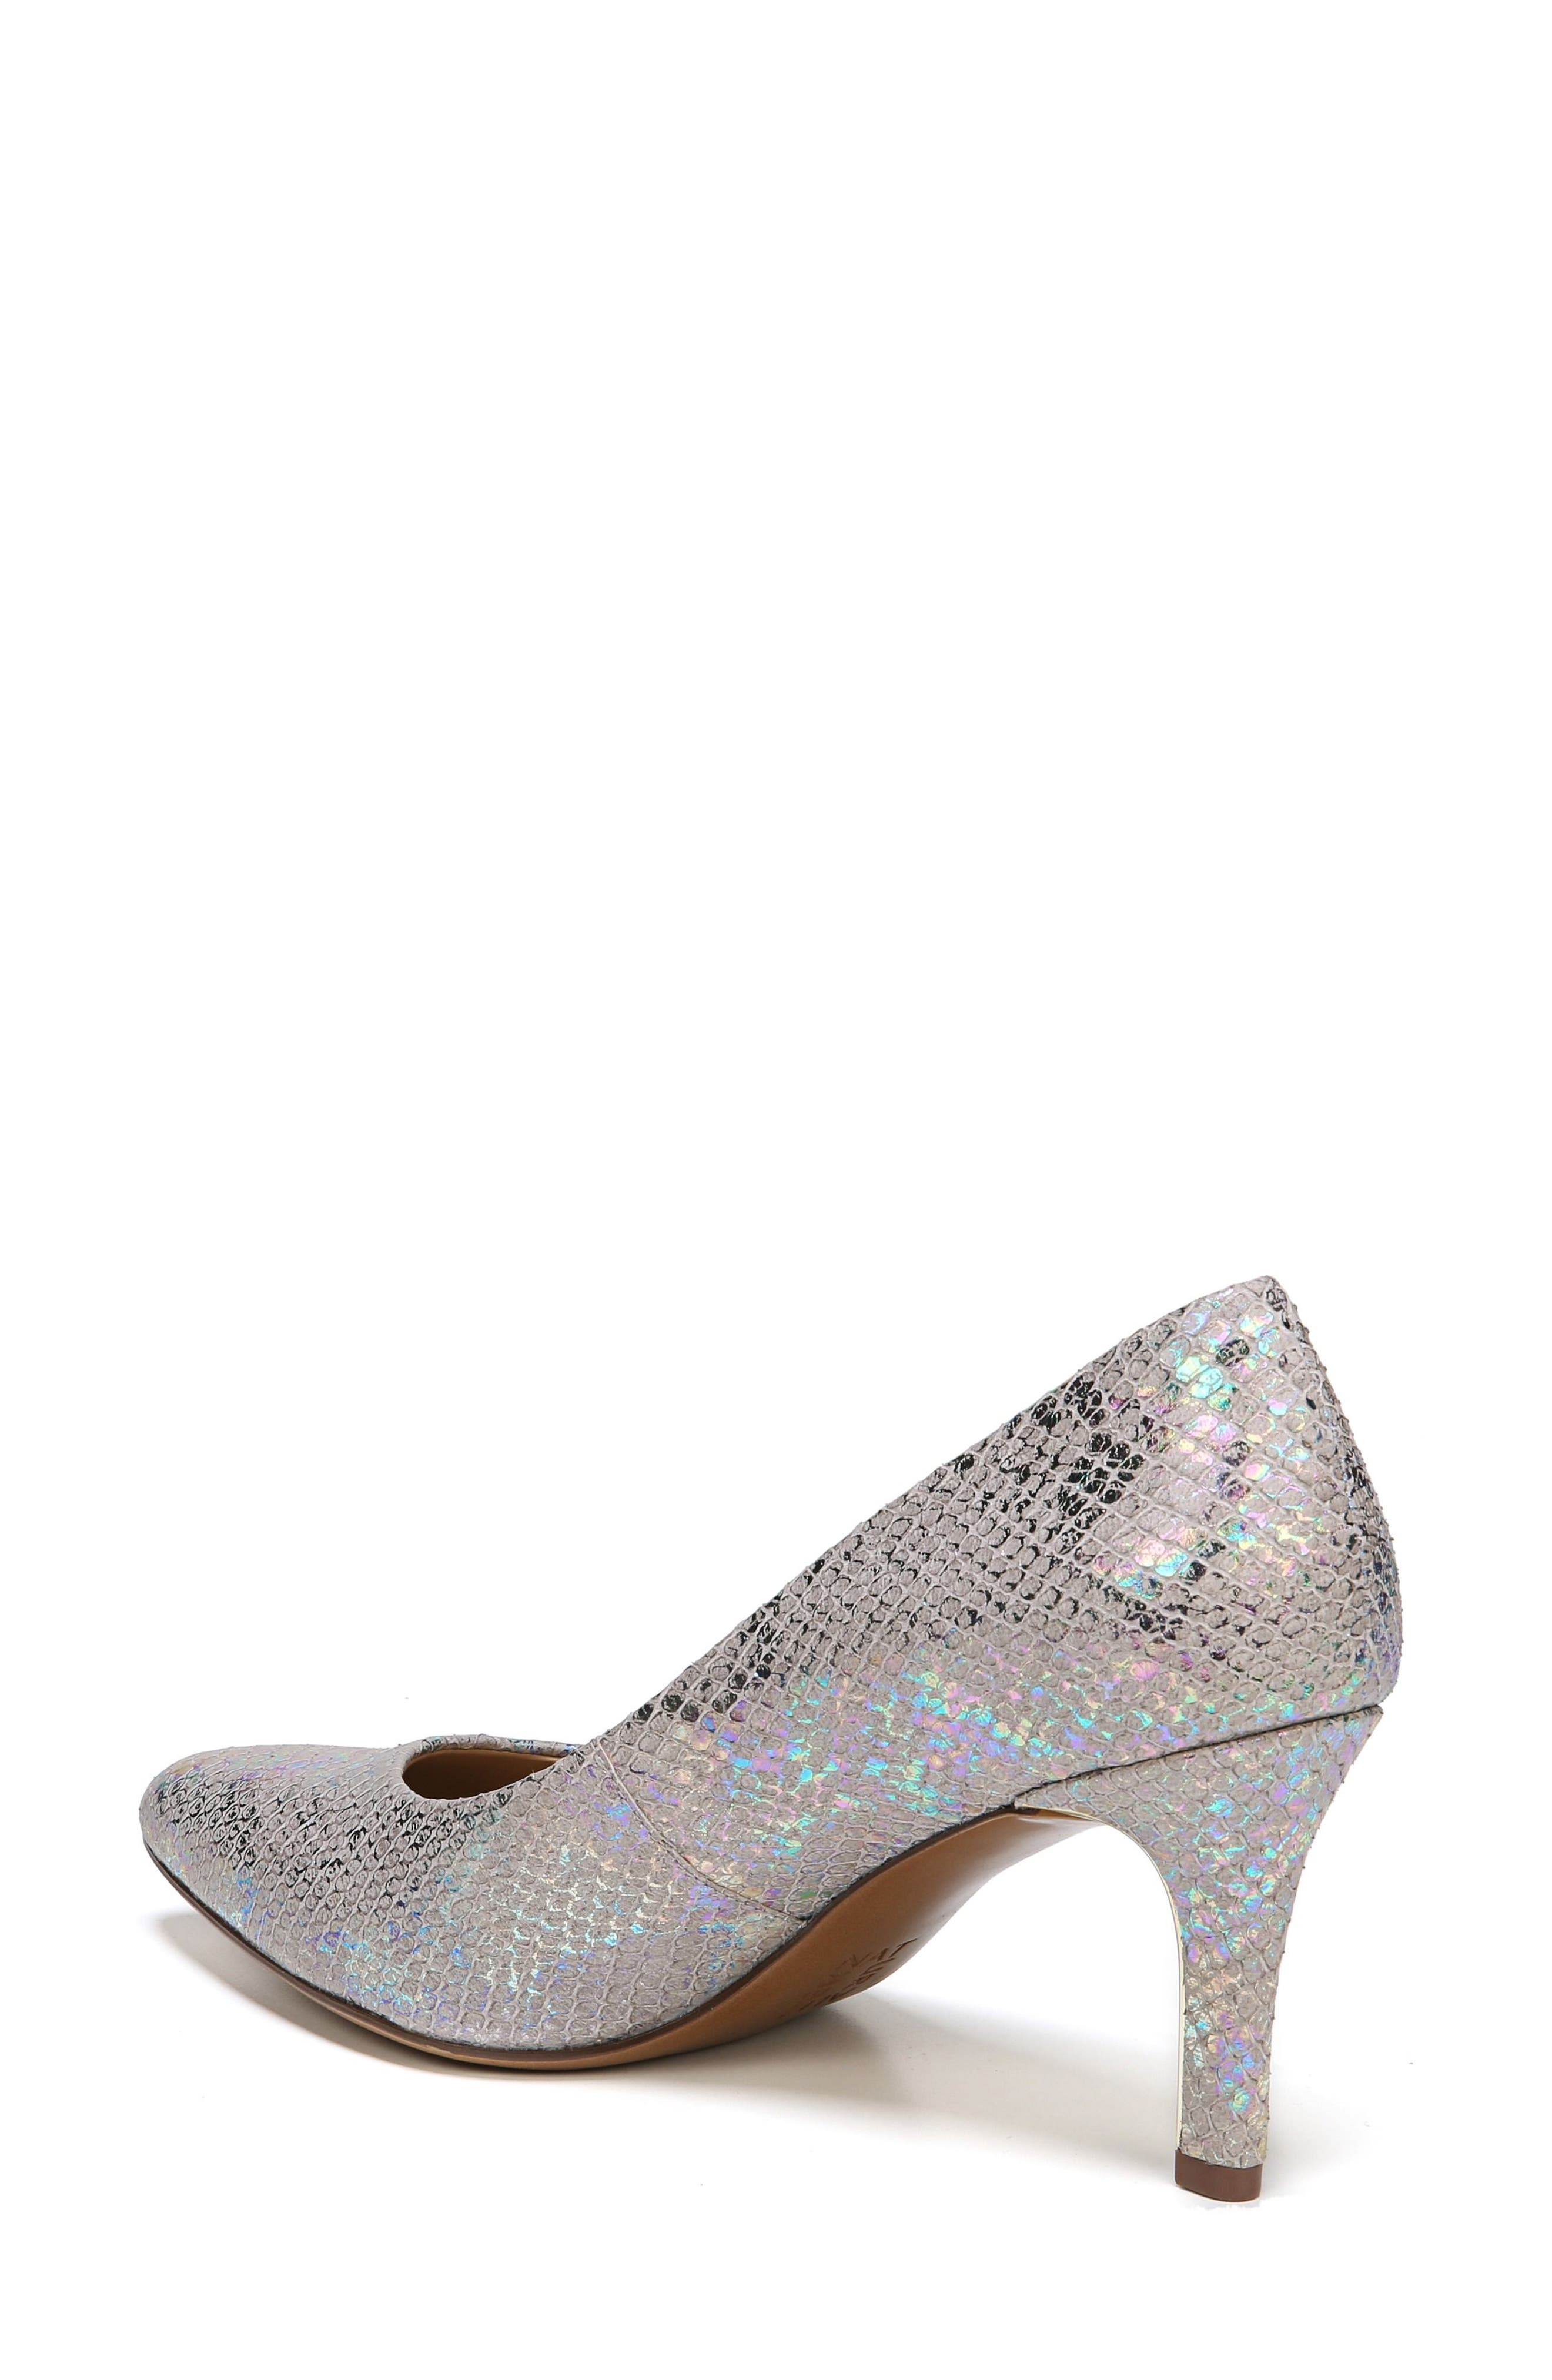 Natalie Pointy Toe Pump,                             Alternate thumbnail 2, color,                             Silver Snake Print Leather